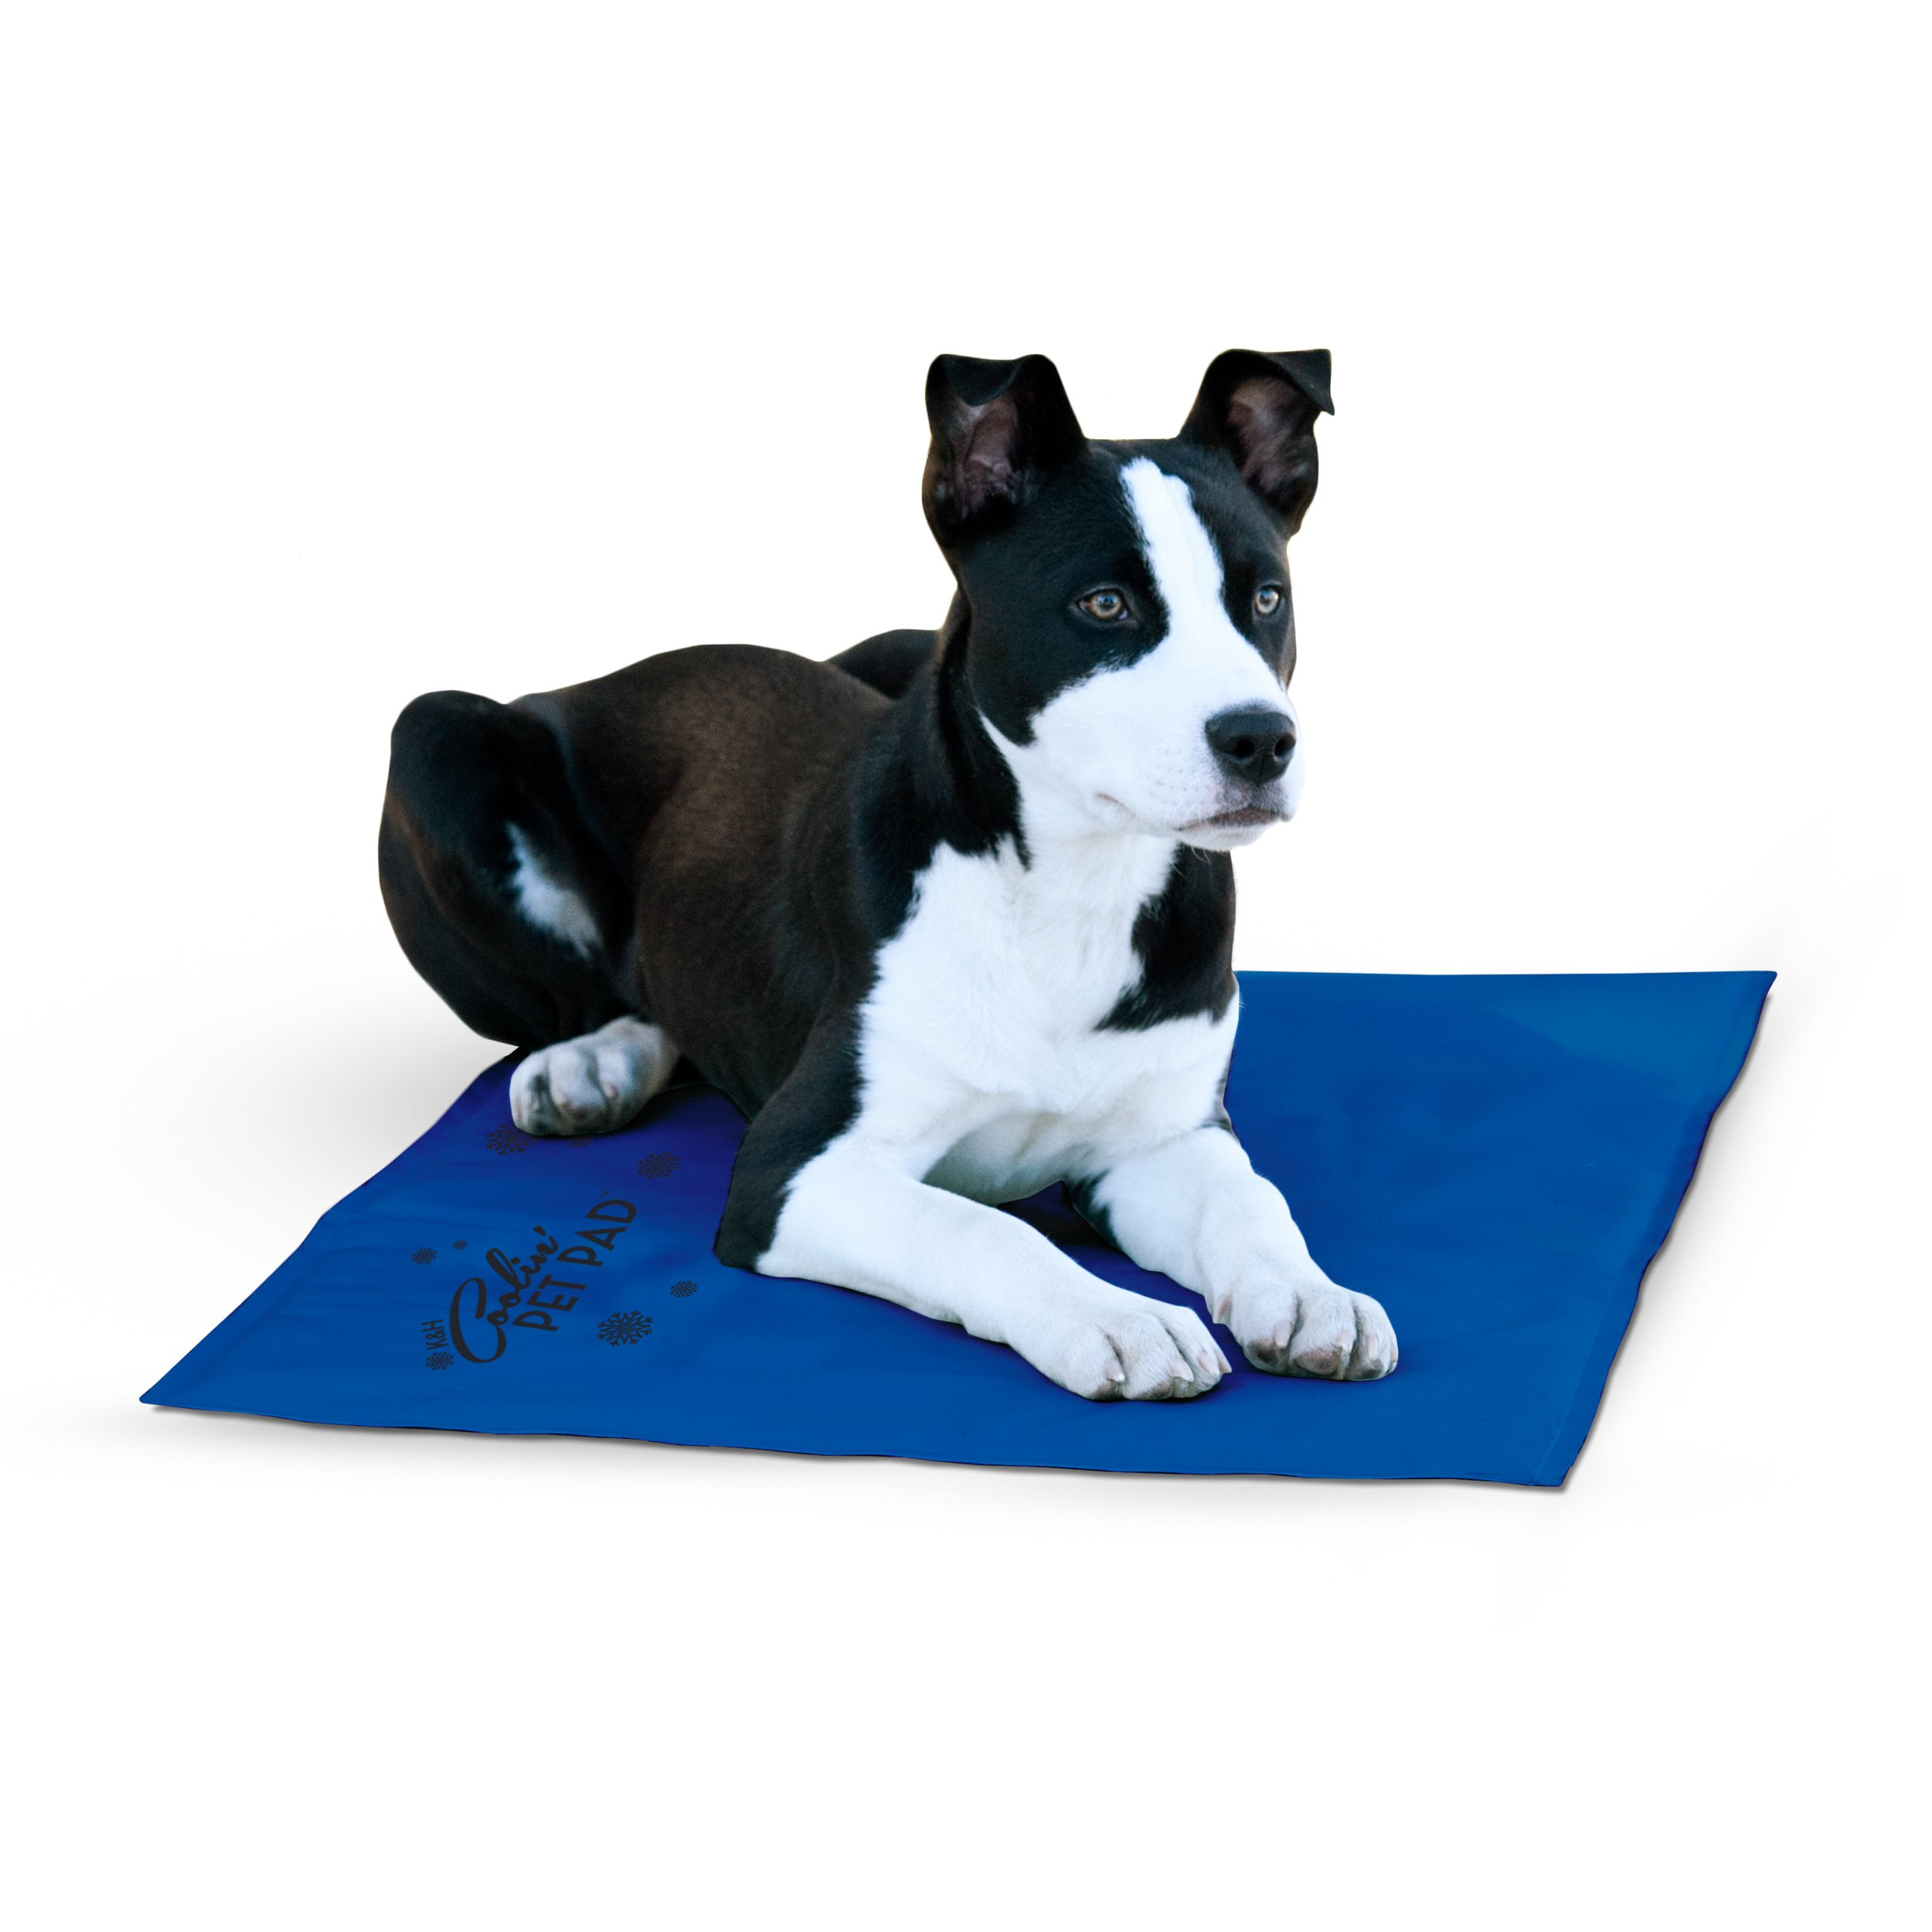 K&H Pet Products Coolin' Pet Pad Large Blue 20'' x 36''